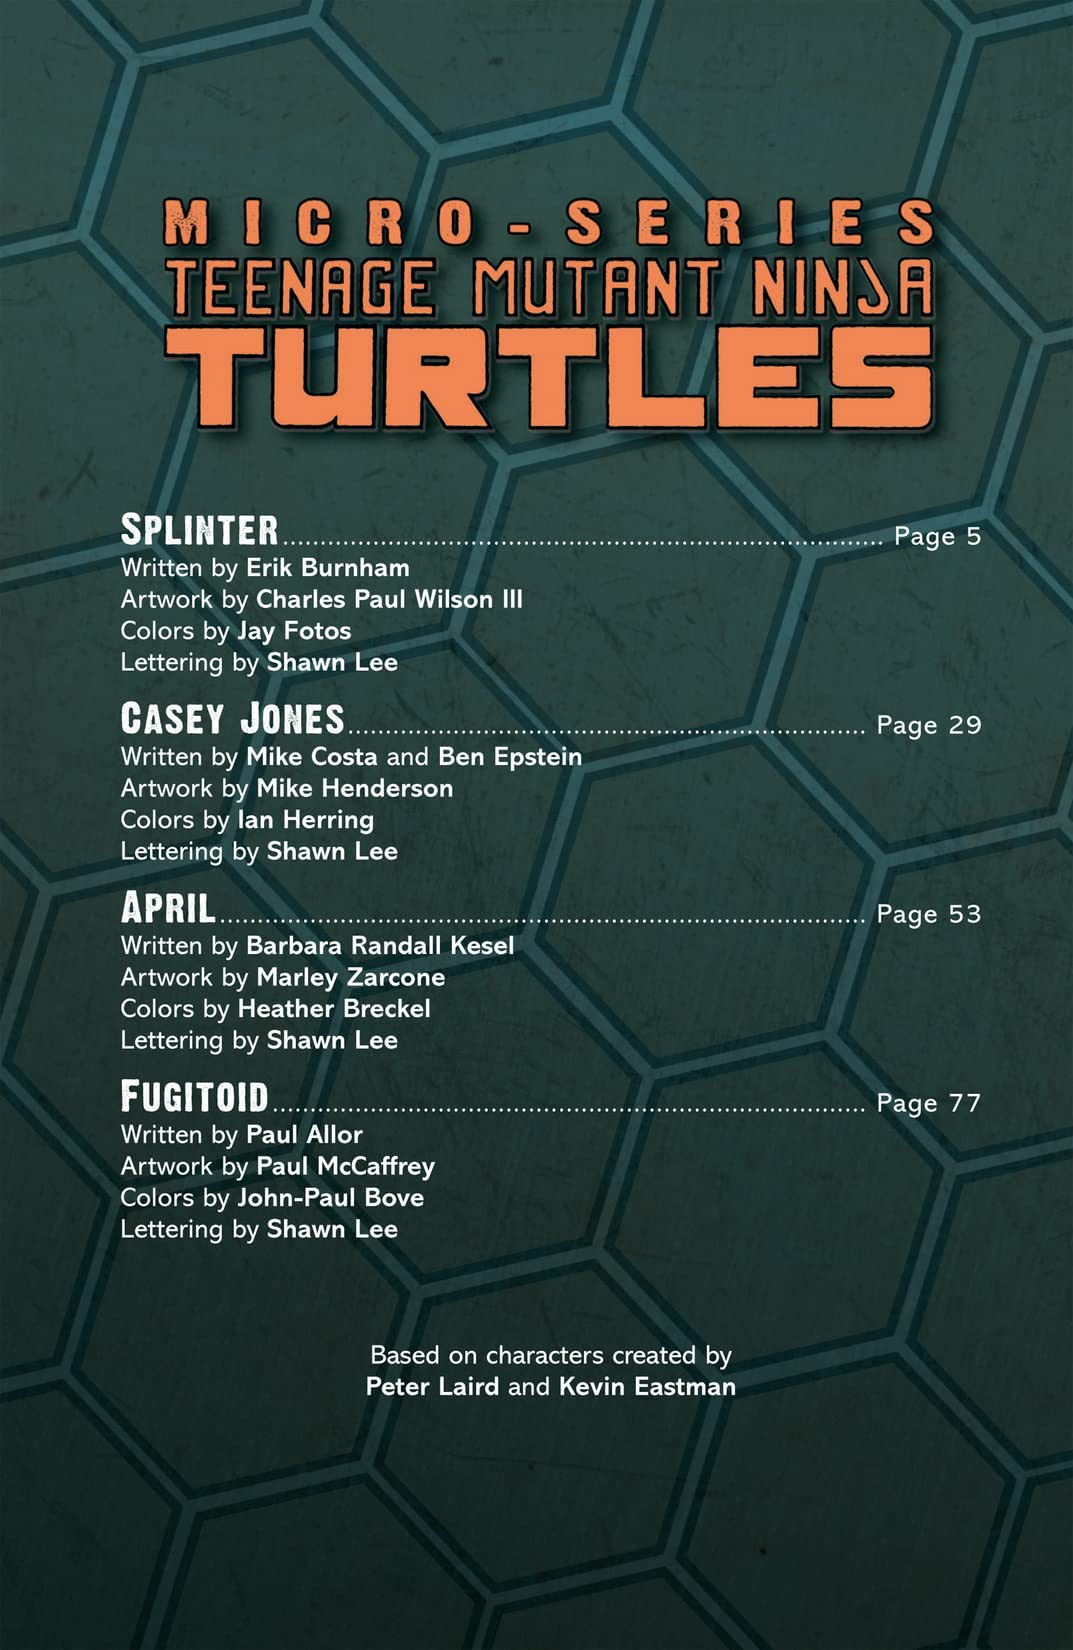 Teenage Mutant Ninja Turtles Micro Series Vol. 2